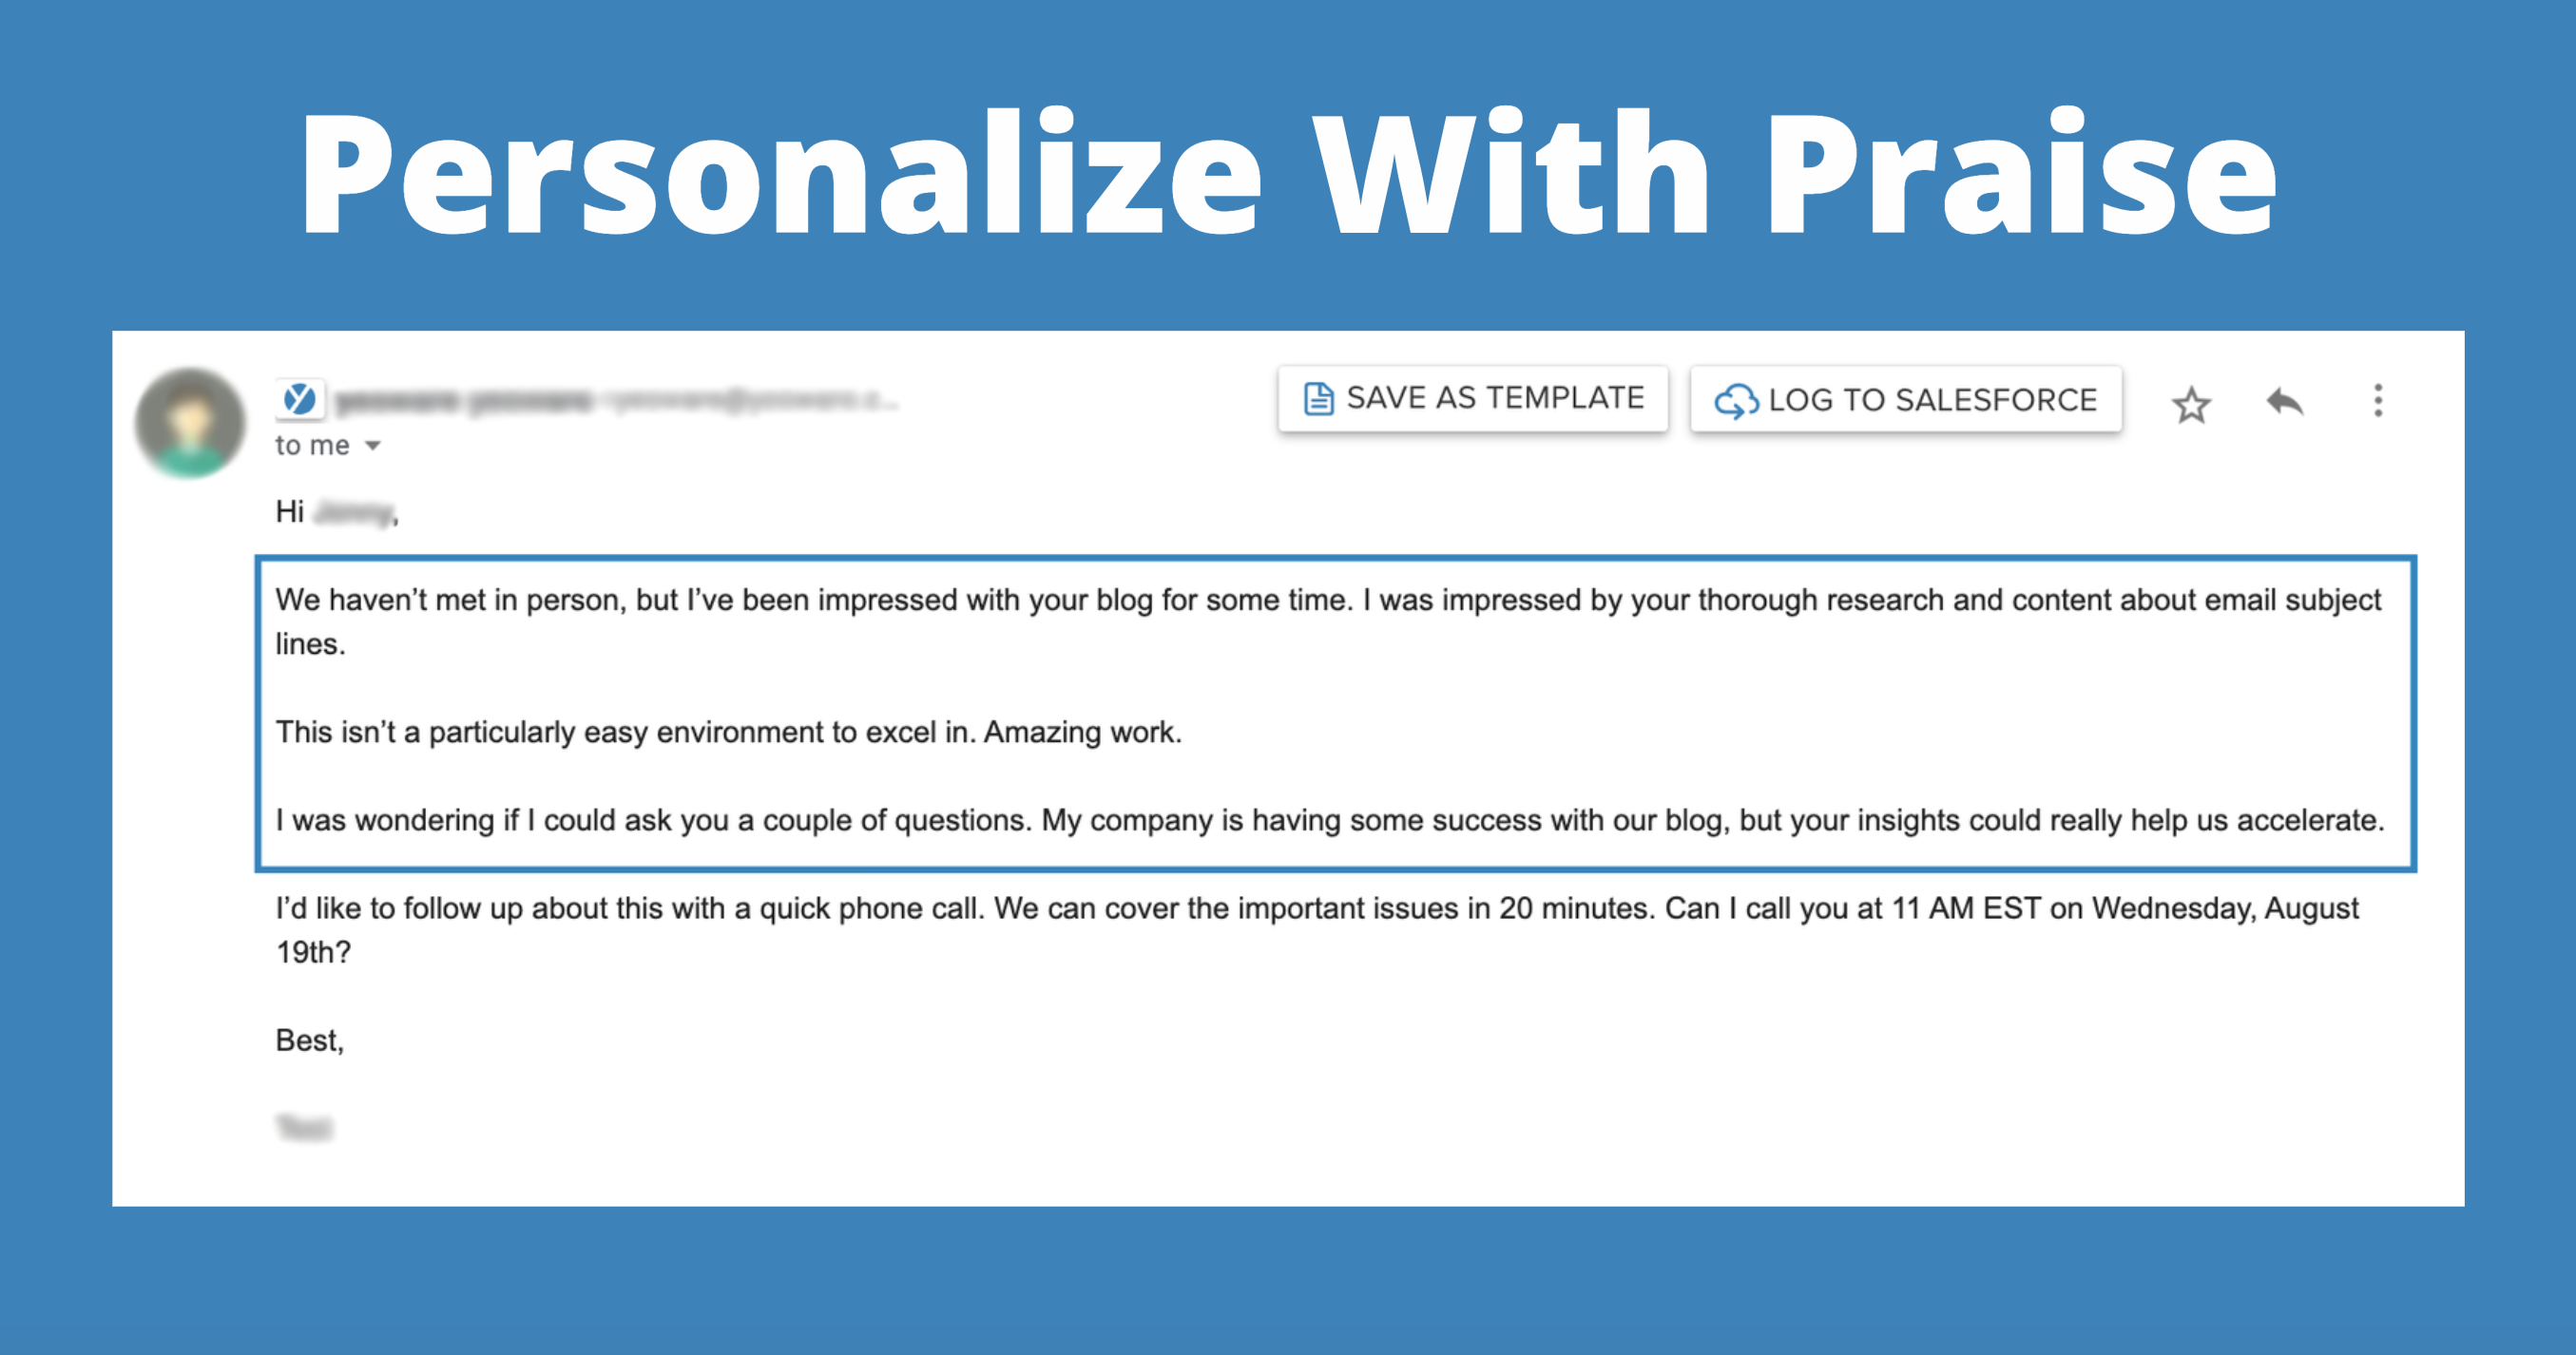 personalized emails: personalize with praise